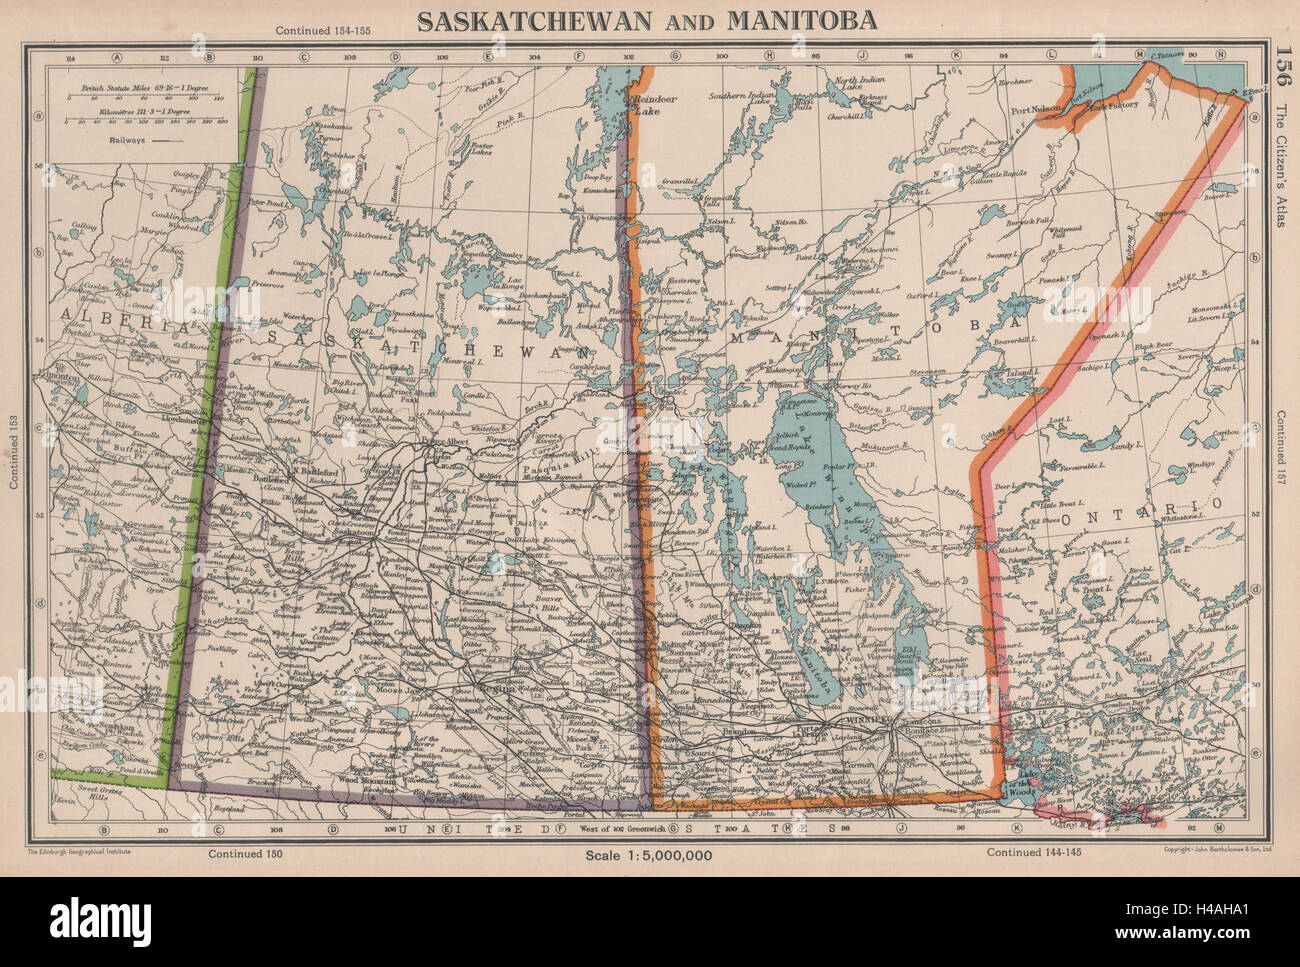 Saskatchewan manitoba provinces canada railways bartholomew saskatchewan manitoba provinces canada railways bartholomew 1944 old map gumiabroncs Choice Image